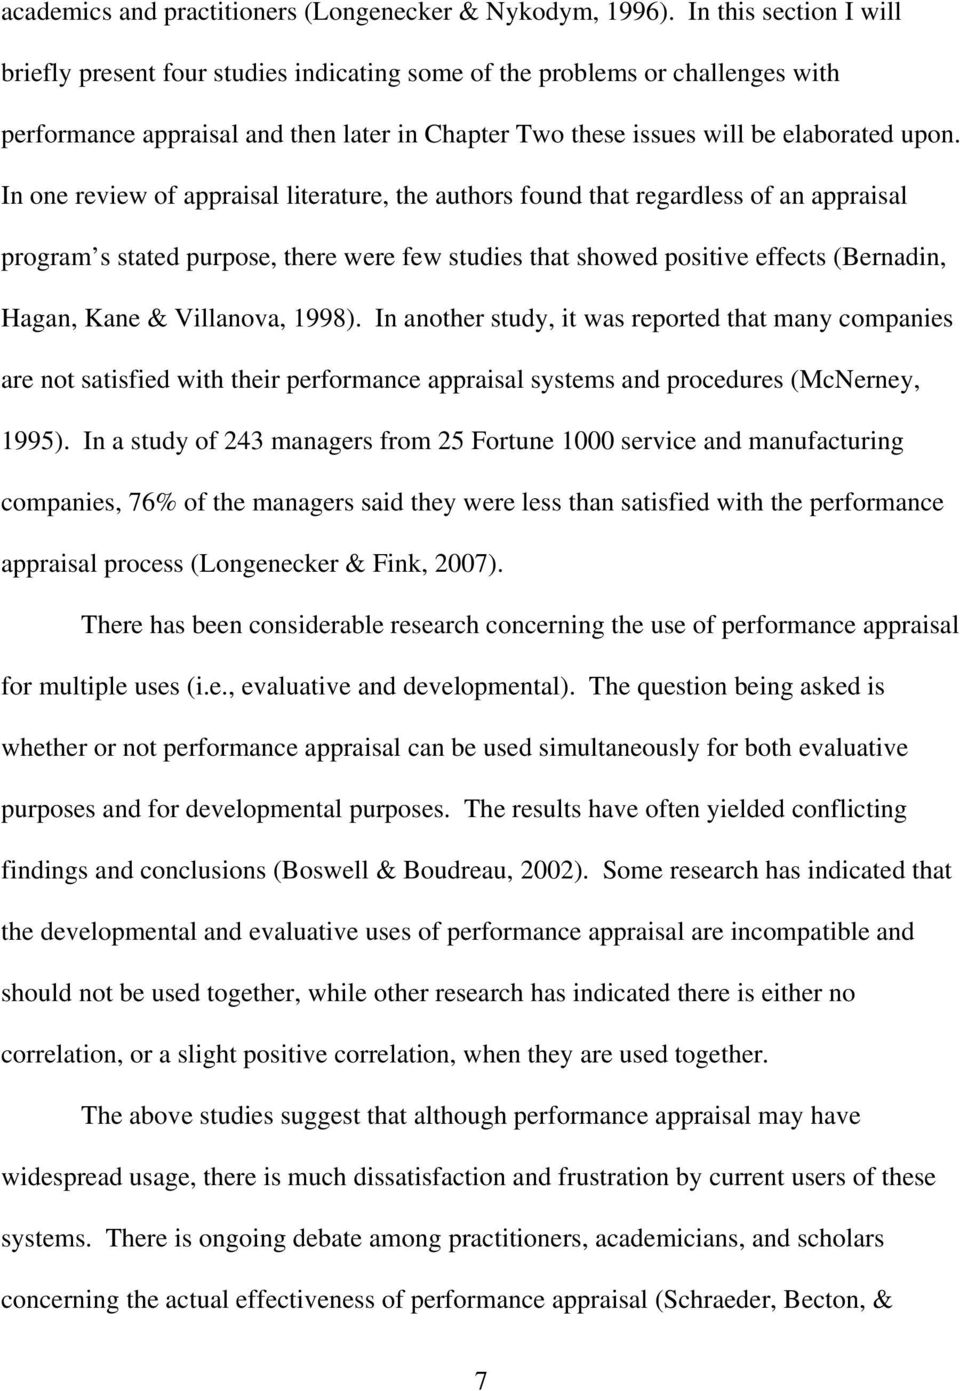 performance appraisal review of literature